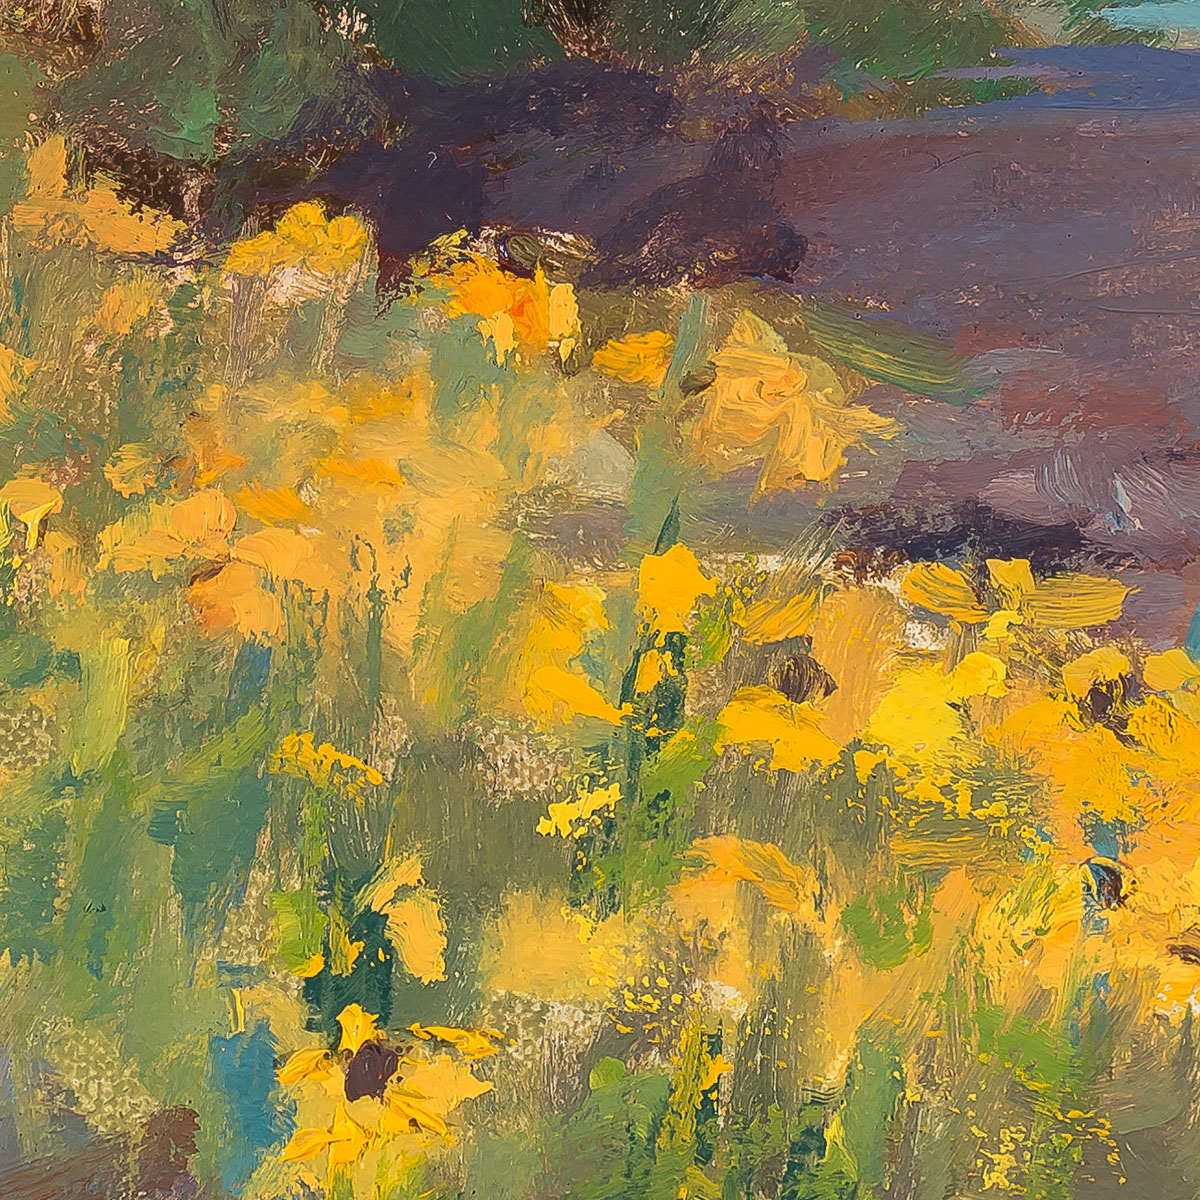 Yellow Profusion-Painting by -Sue Wipf - crop